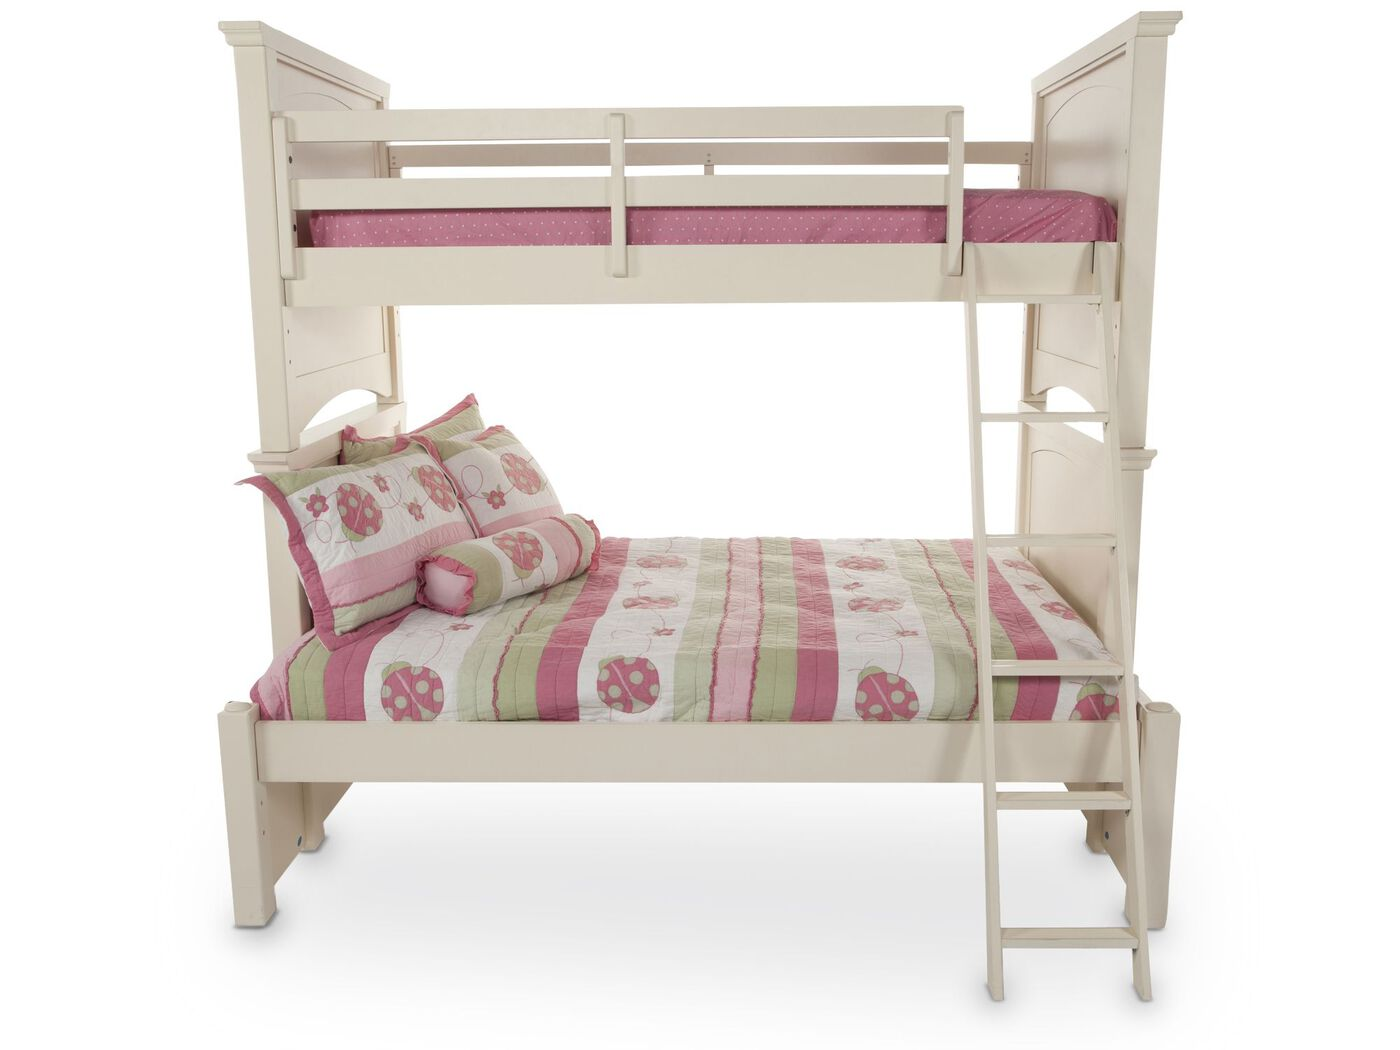 Mathis Brothers Bunk Beds Trendwood High Bunk Bed Mathis